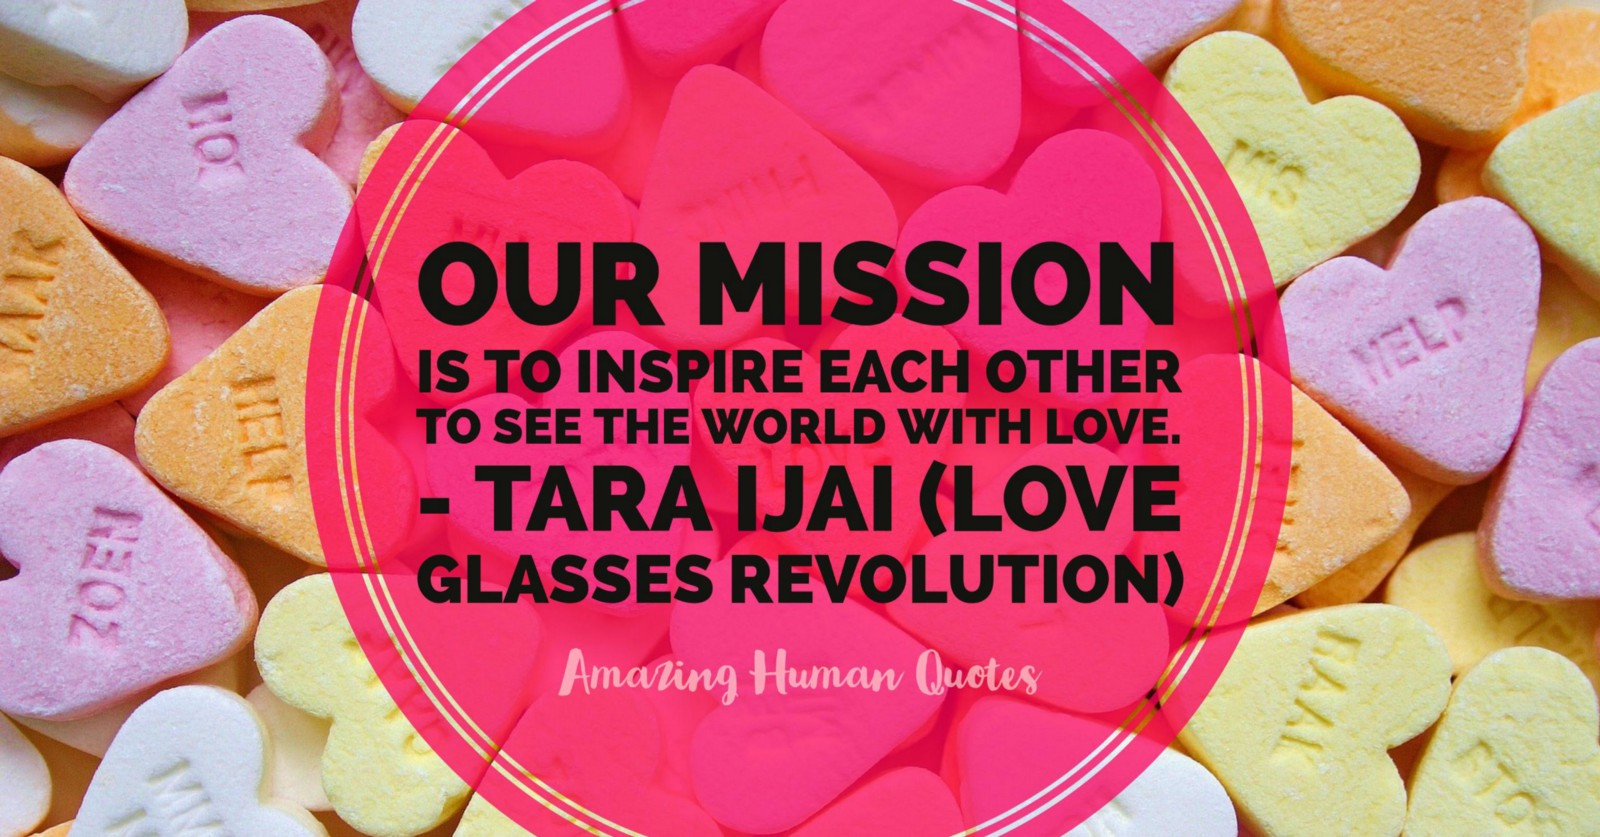 Tara Ijai Love Glasses Revolution